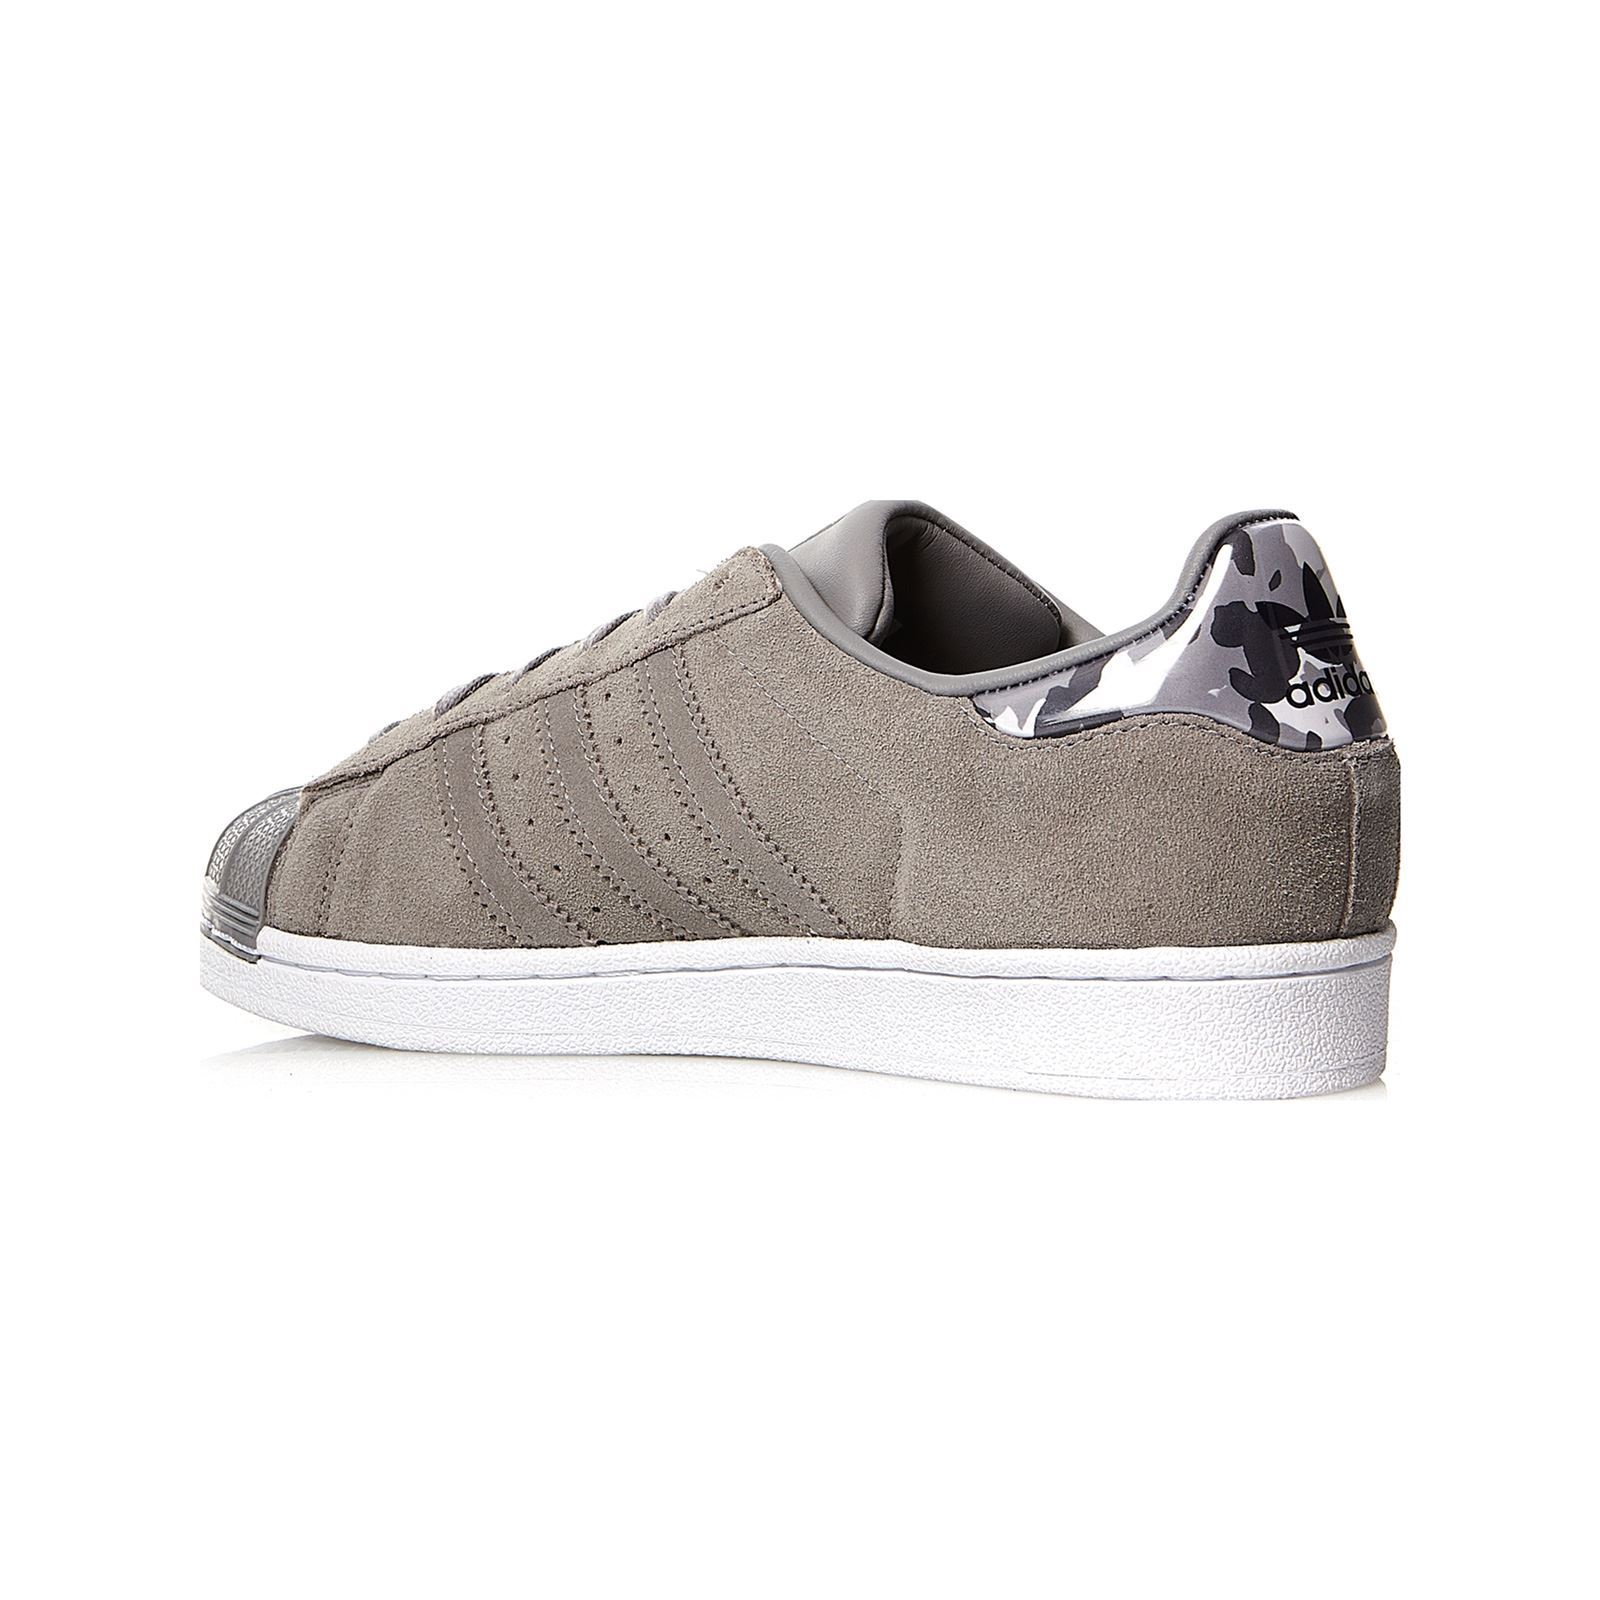 new style 3aa1a 7782b ADIDAS ORIGINALS Superstar J - Sneakers in pelle - grigio